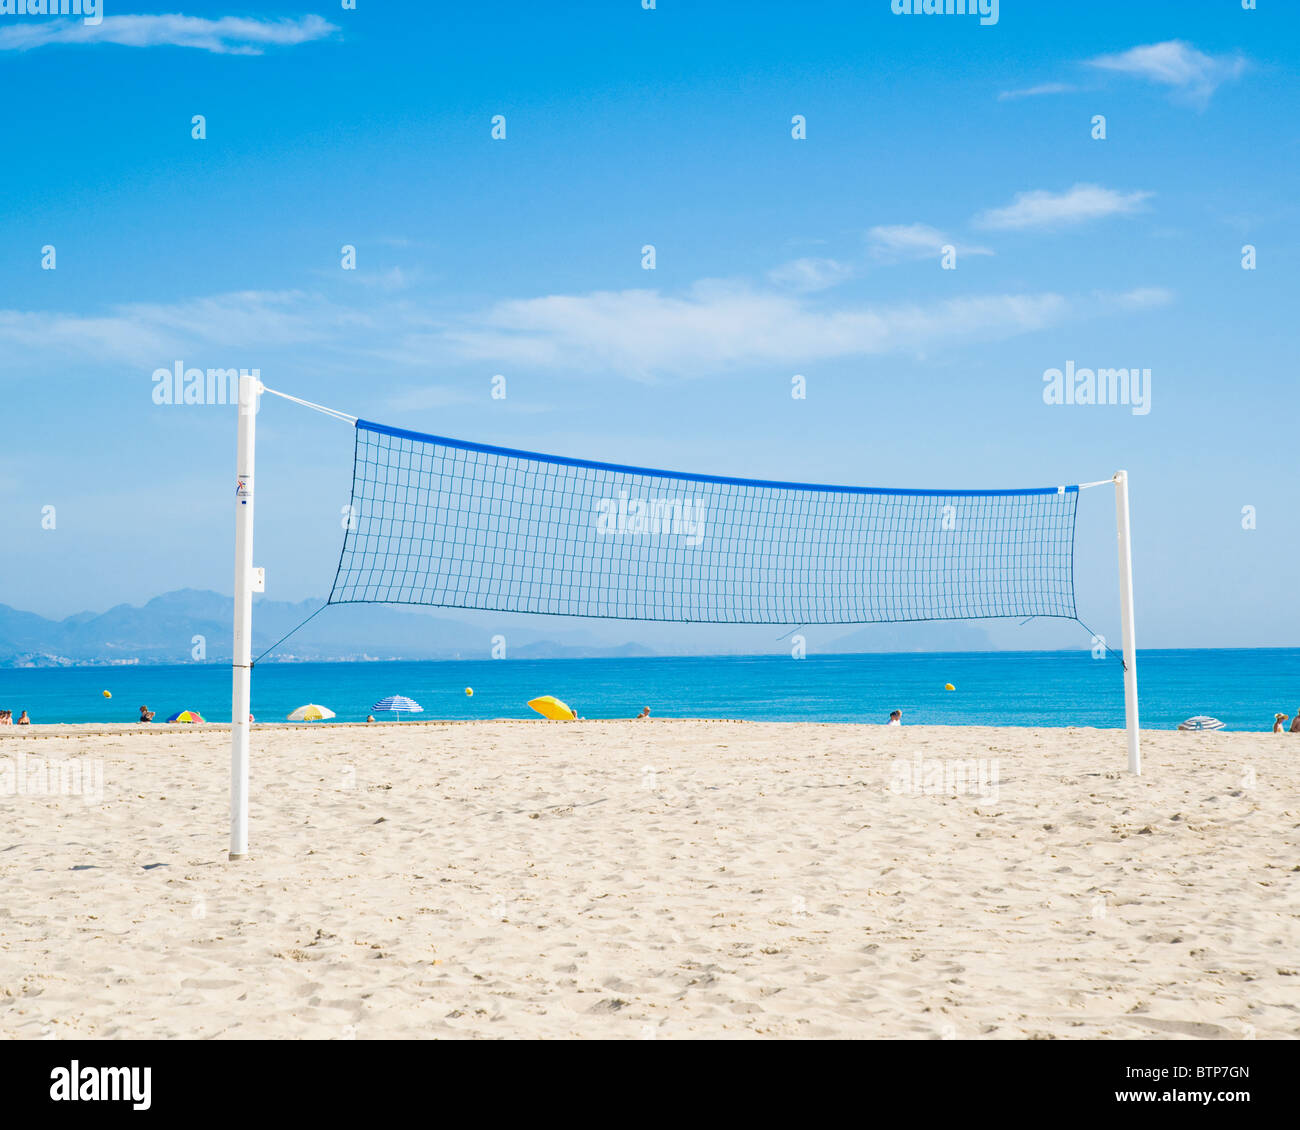 Volleyball Net, Benidorm, Costa Blanca, Spain - Stock Image